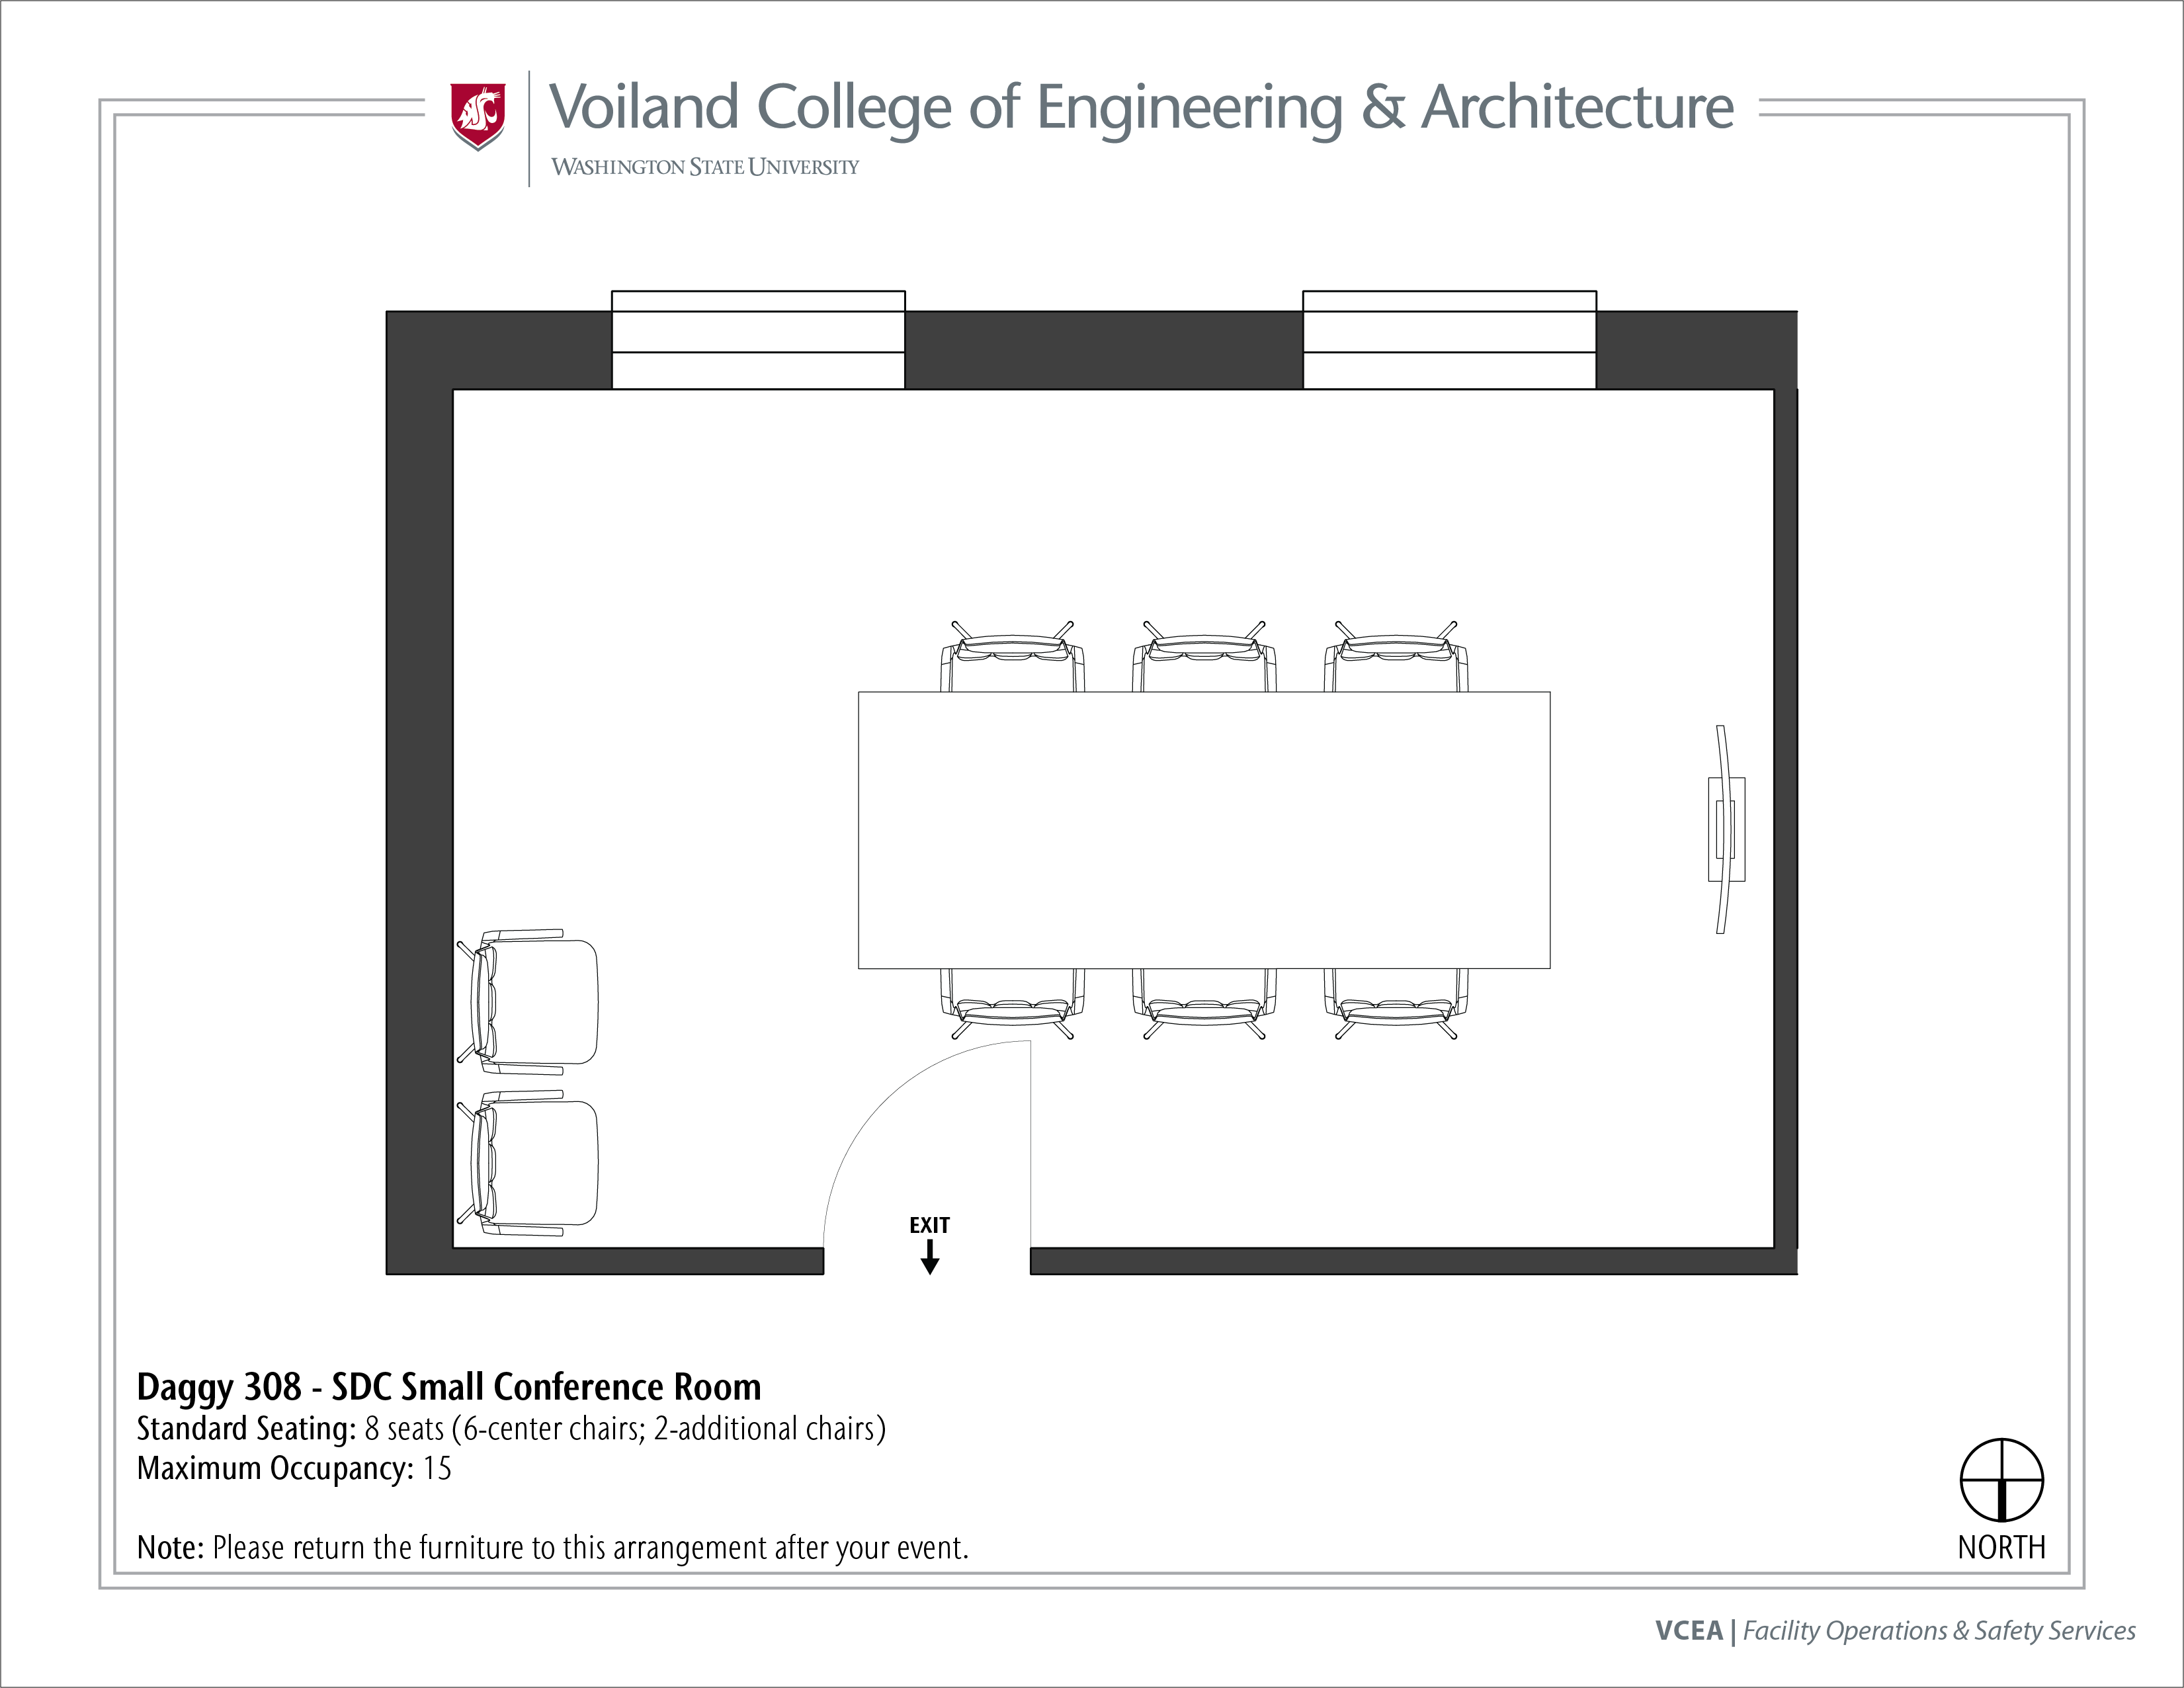 Layout of Daggy 308, SDC Small Conference Room, at WSU Pullman